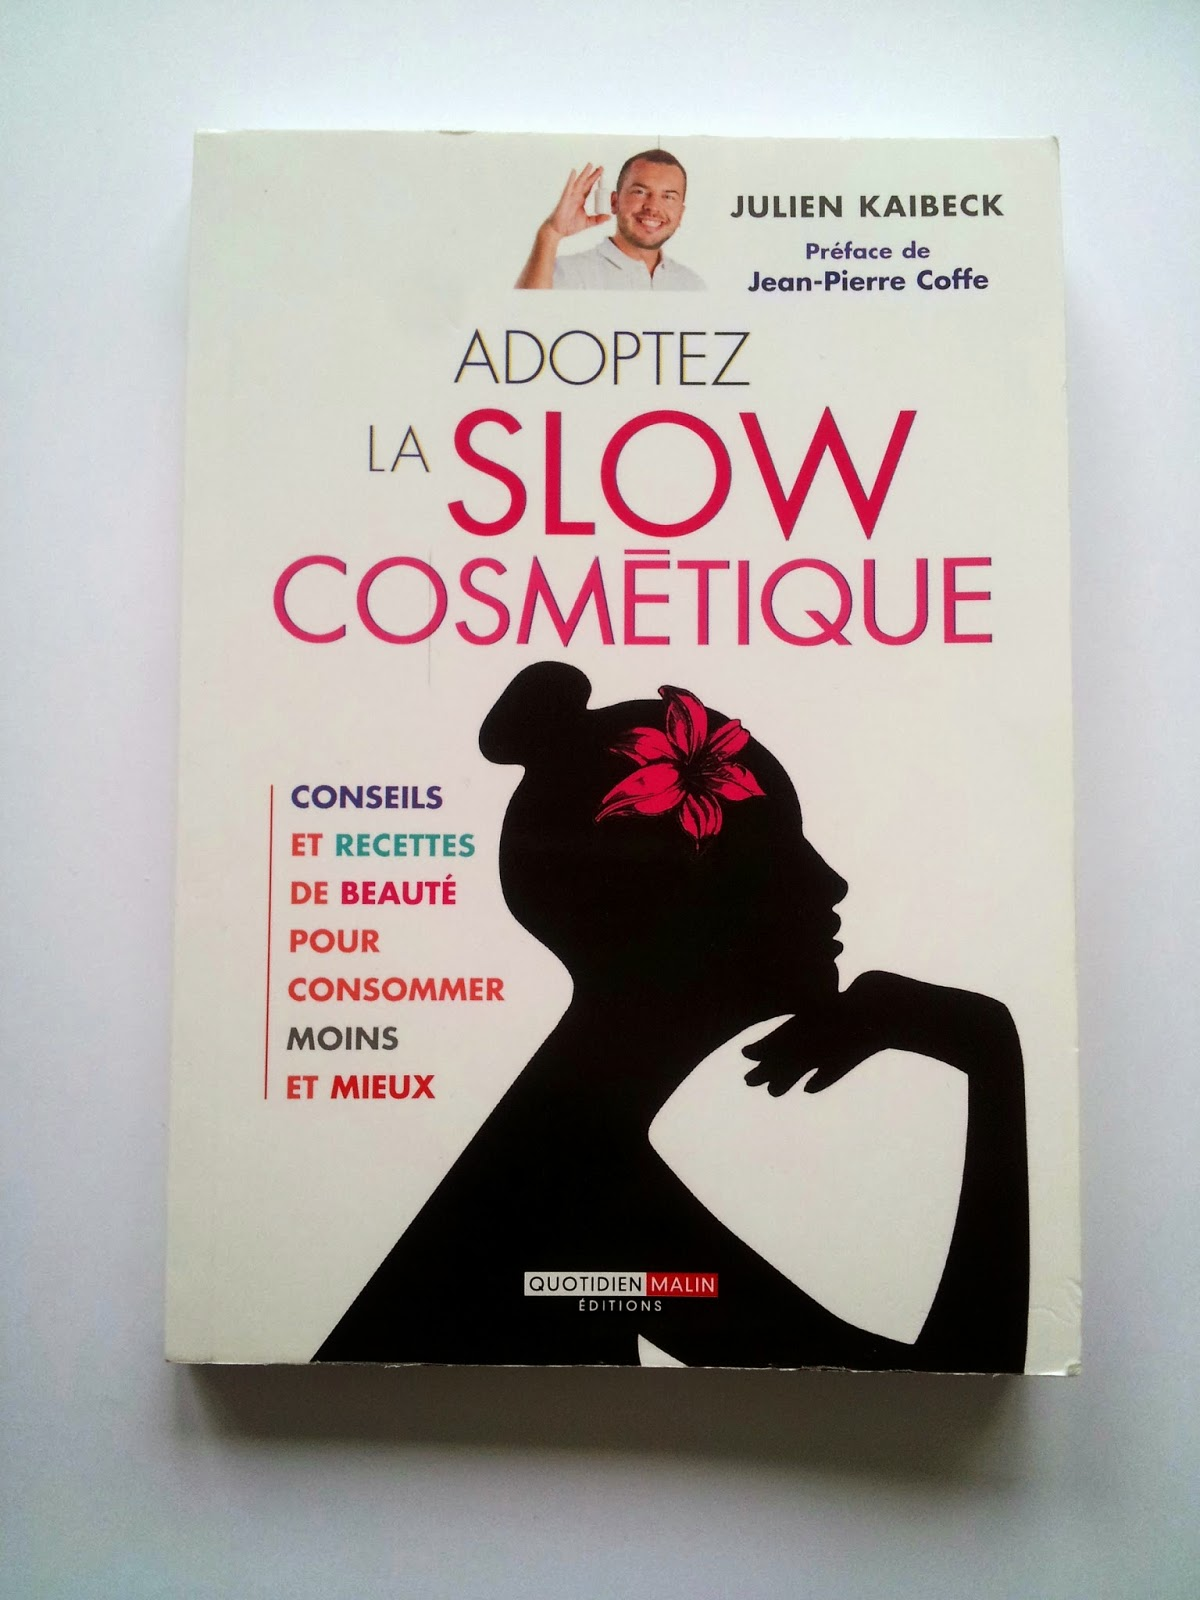 adoptez-la-slow-cosmetique-miss-beaute-addict.blogspot.fr